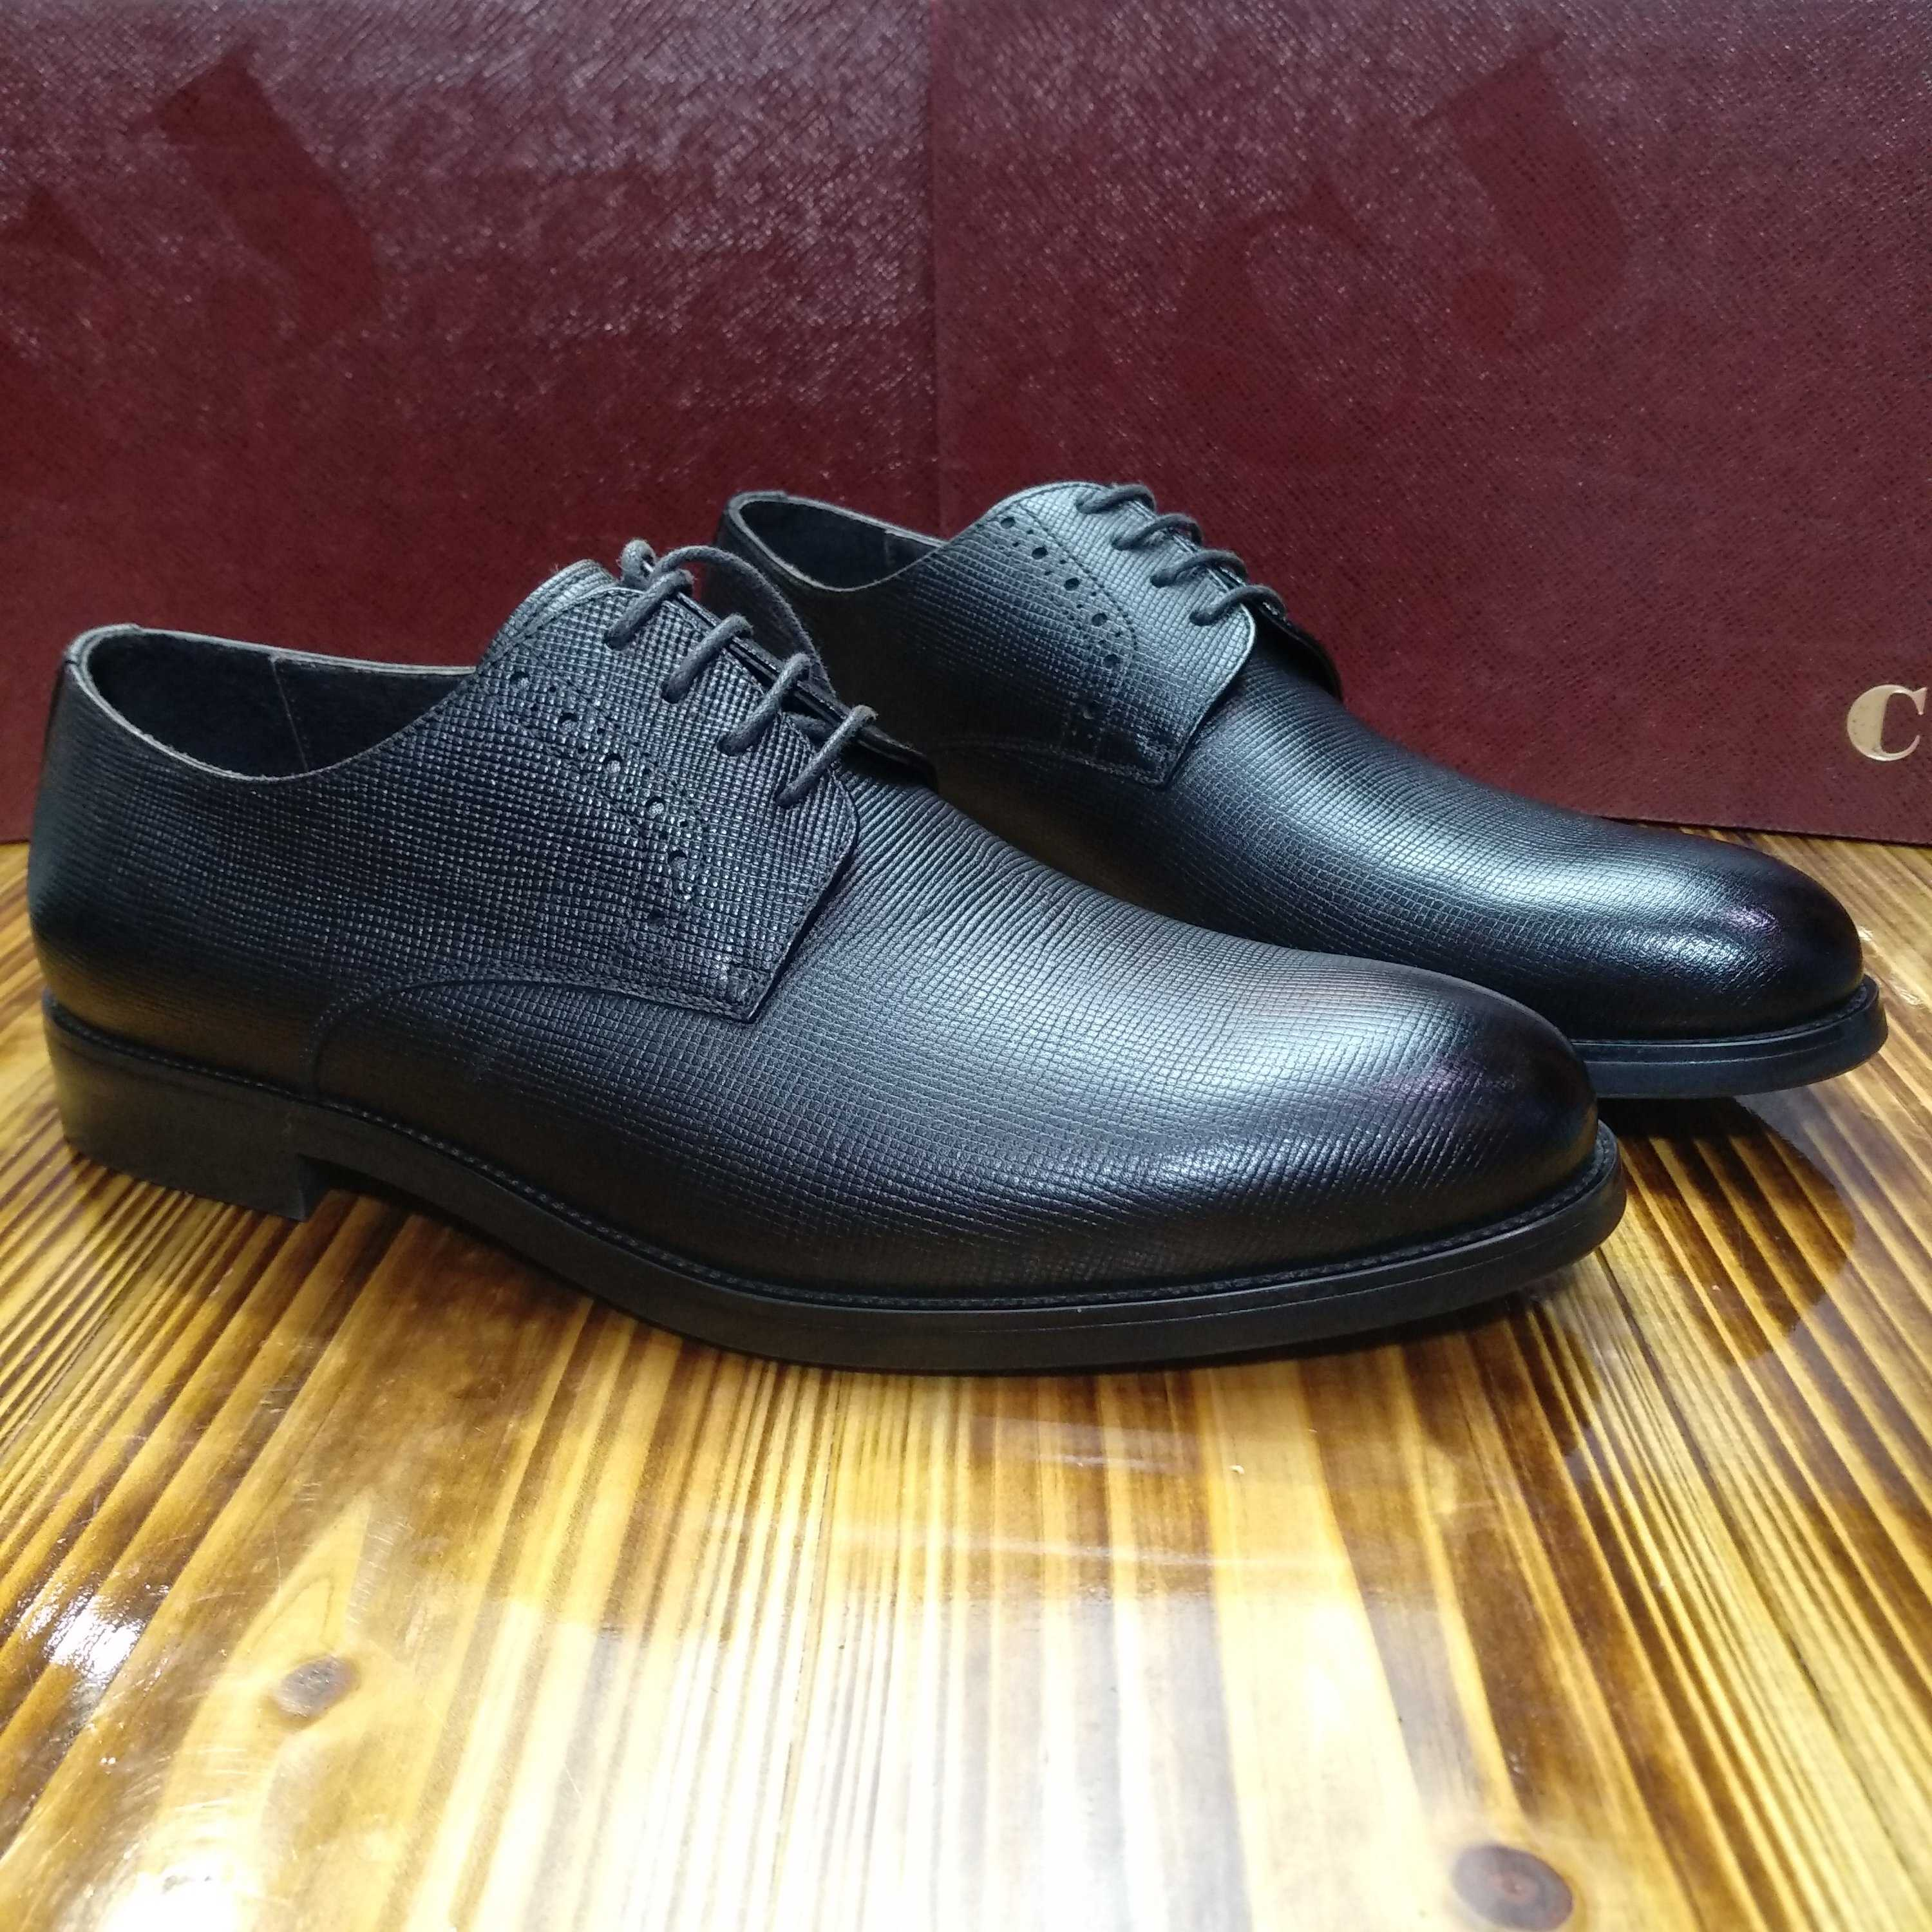 Mens high-end boutique business leisure leather shoes, imported cross grain leather, Derby formal dress, handmade Goodyear